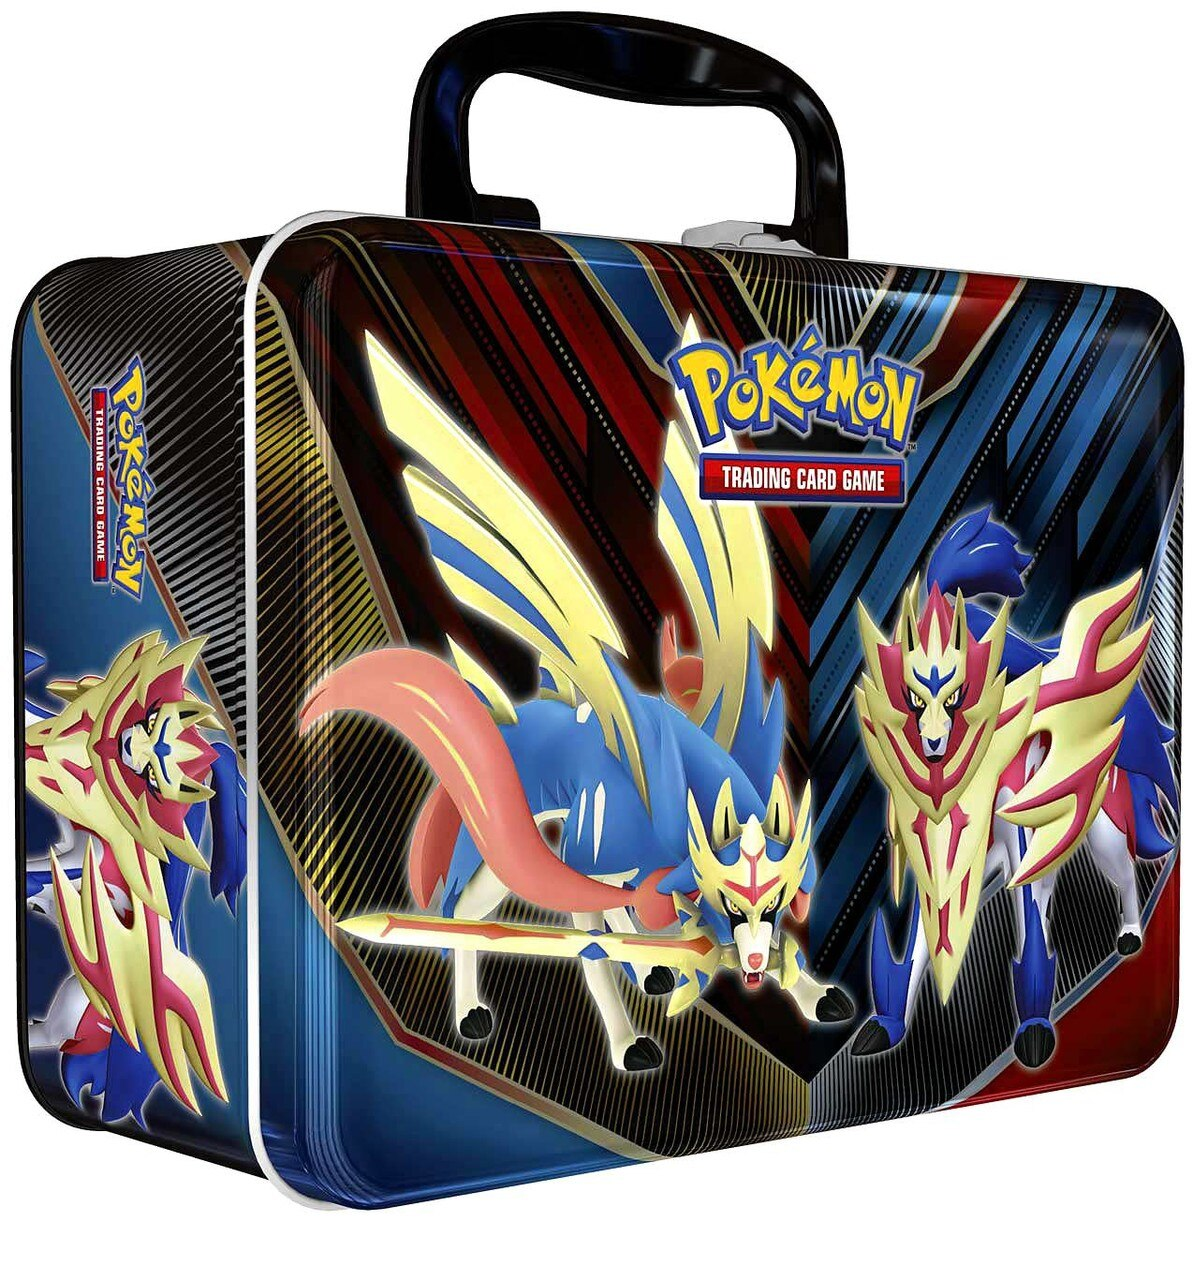 Pokemon Trading Card Game Spring Collectors Chest Tin